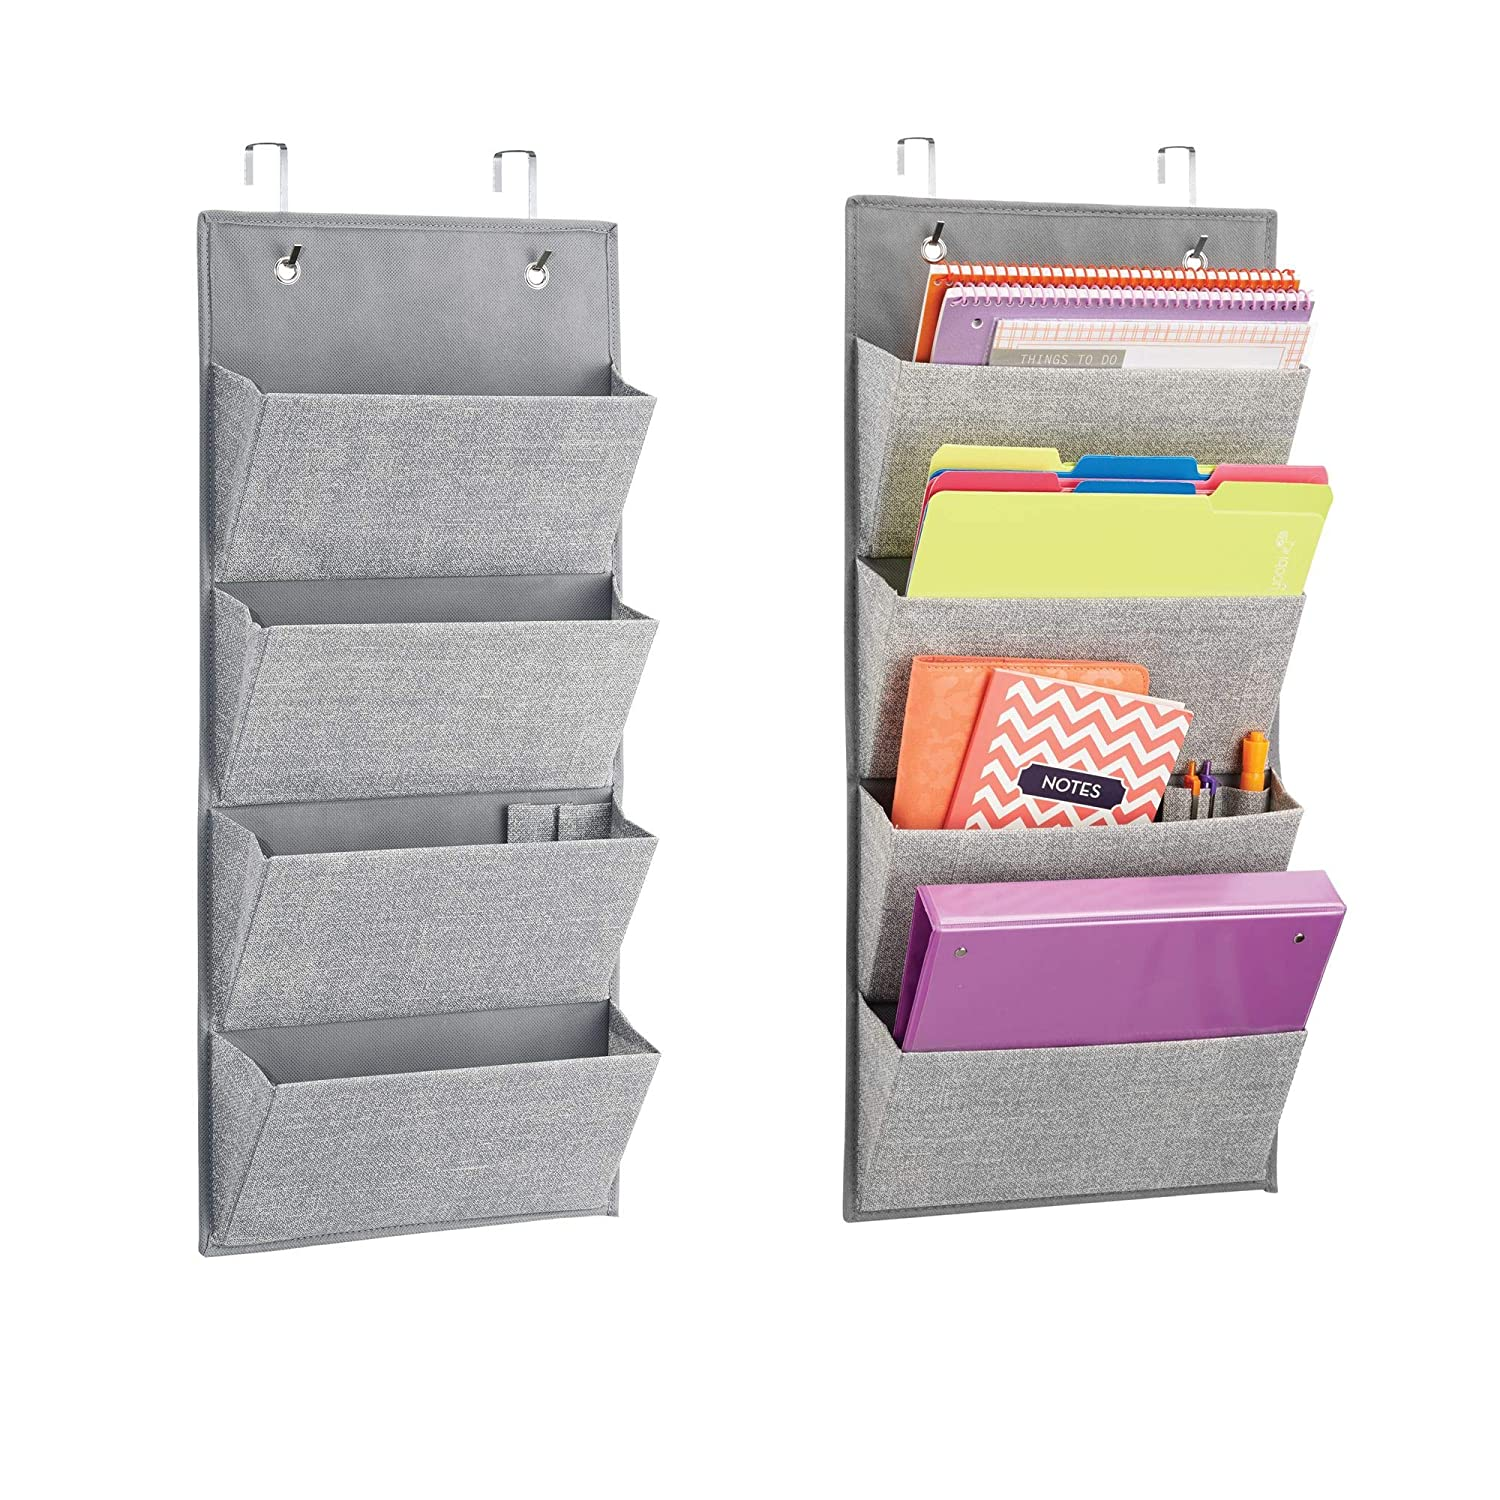 mDesign Over The Cubical Wall Mounting Hanging Fabric Office Supplies Storage Organizer for Notebooks, Planners, File Folders for Home Office Work- Pack of 2, 4 Pockets, Gray MetroDecor 6180MDO